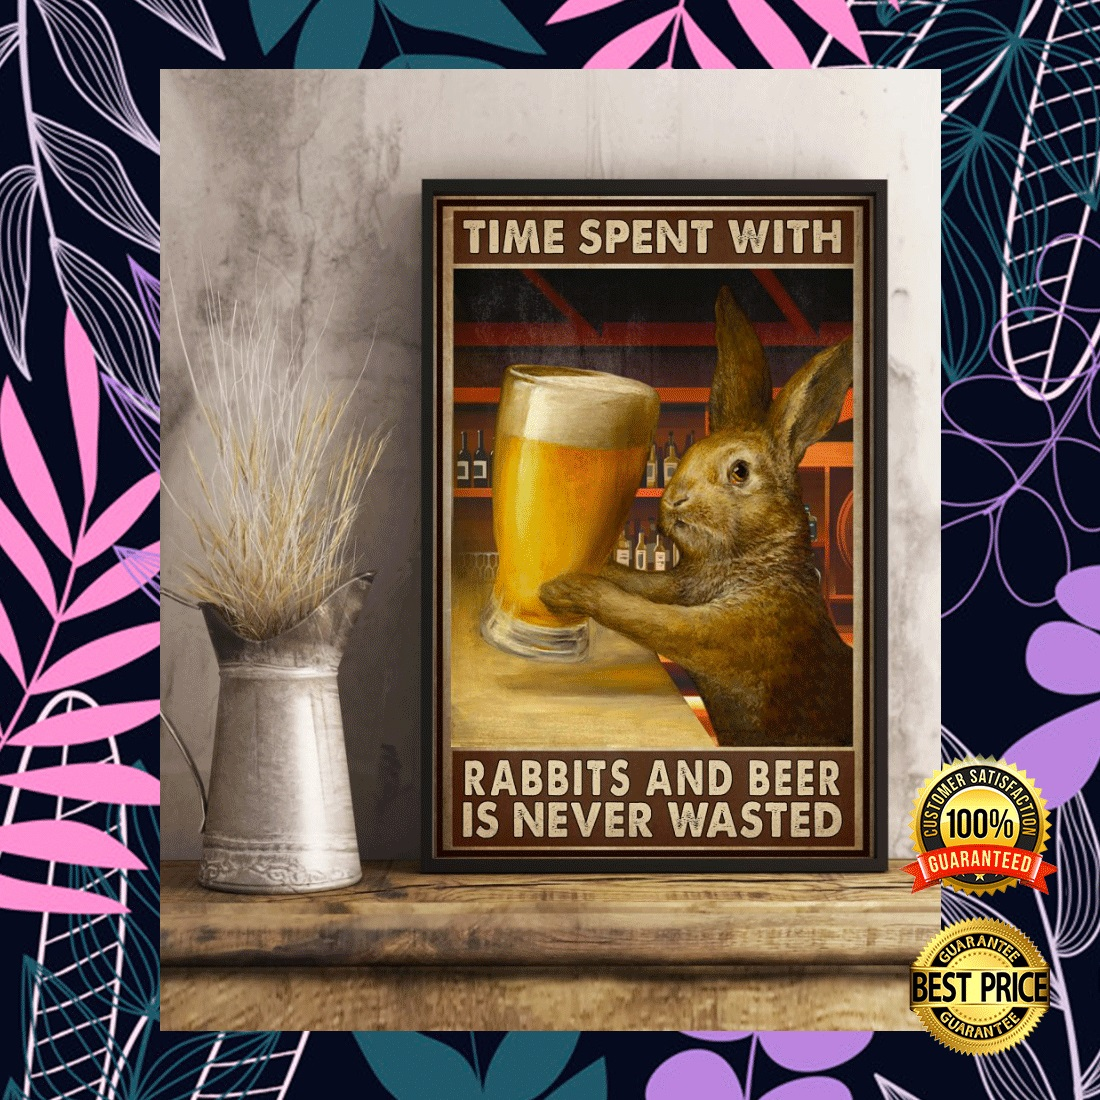 TIME SPENT WITH RABBITS AND BEER IS NEVER WASTED POSTER 5